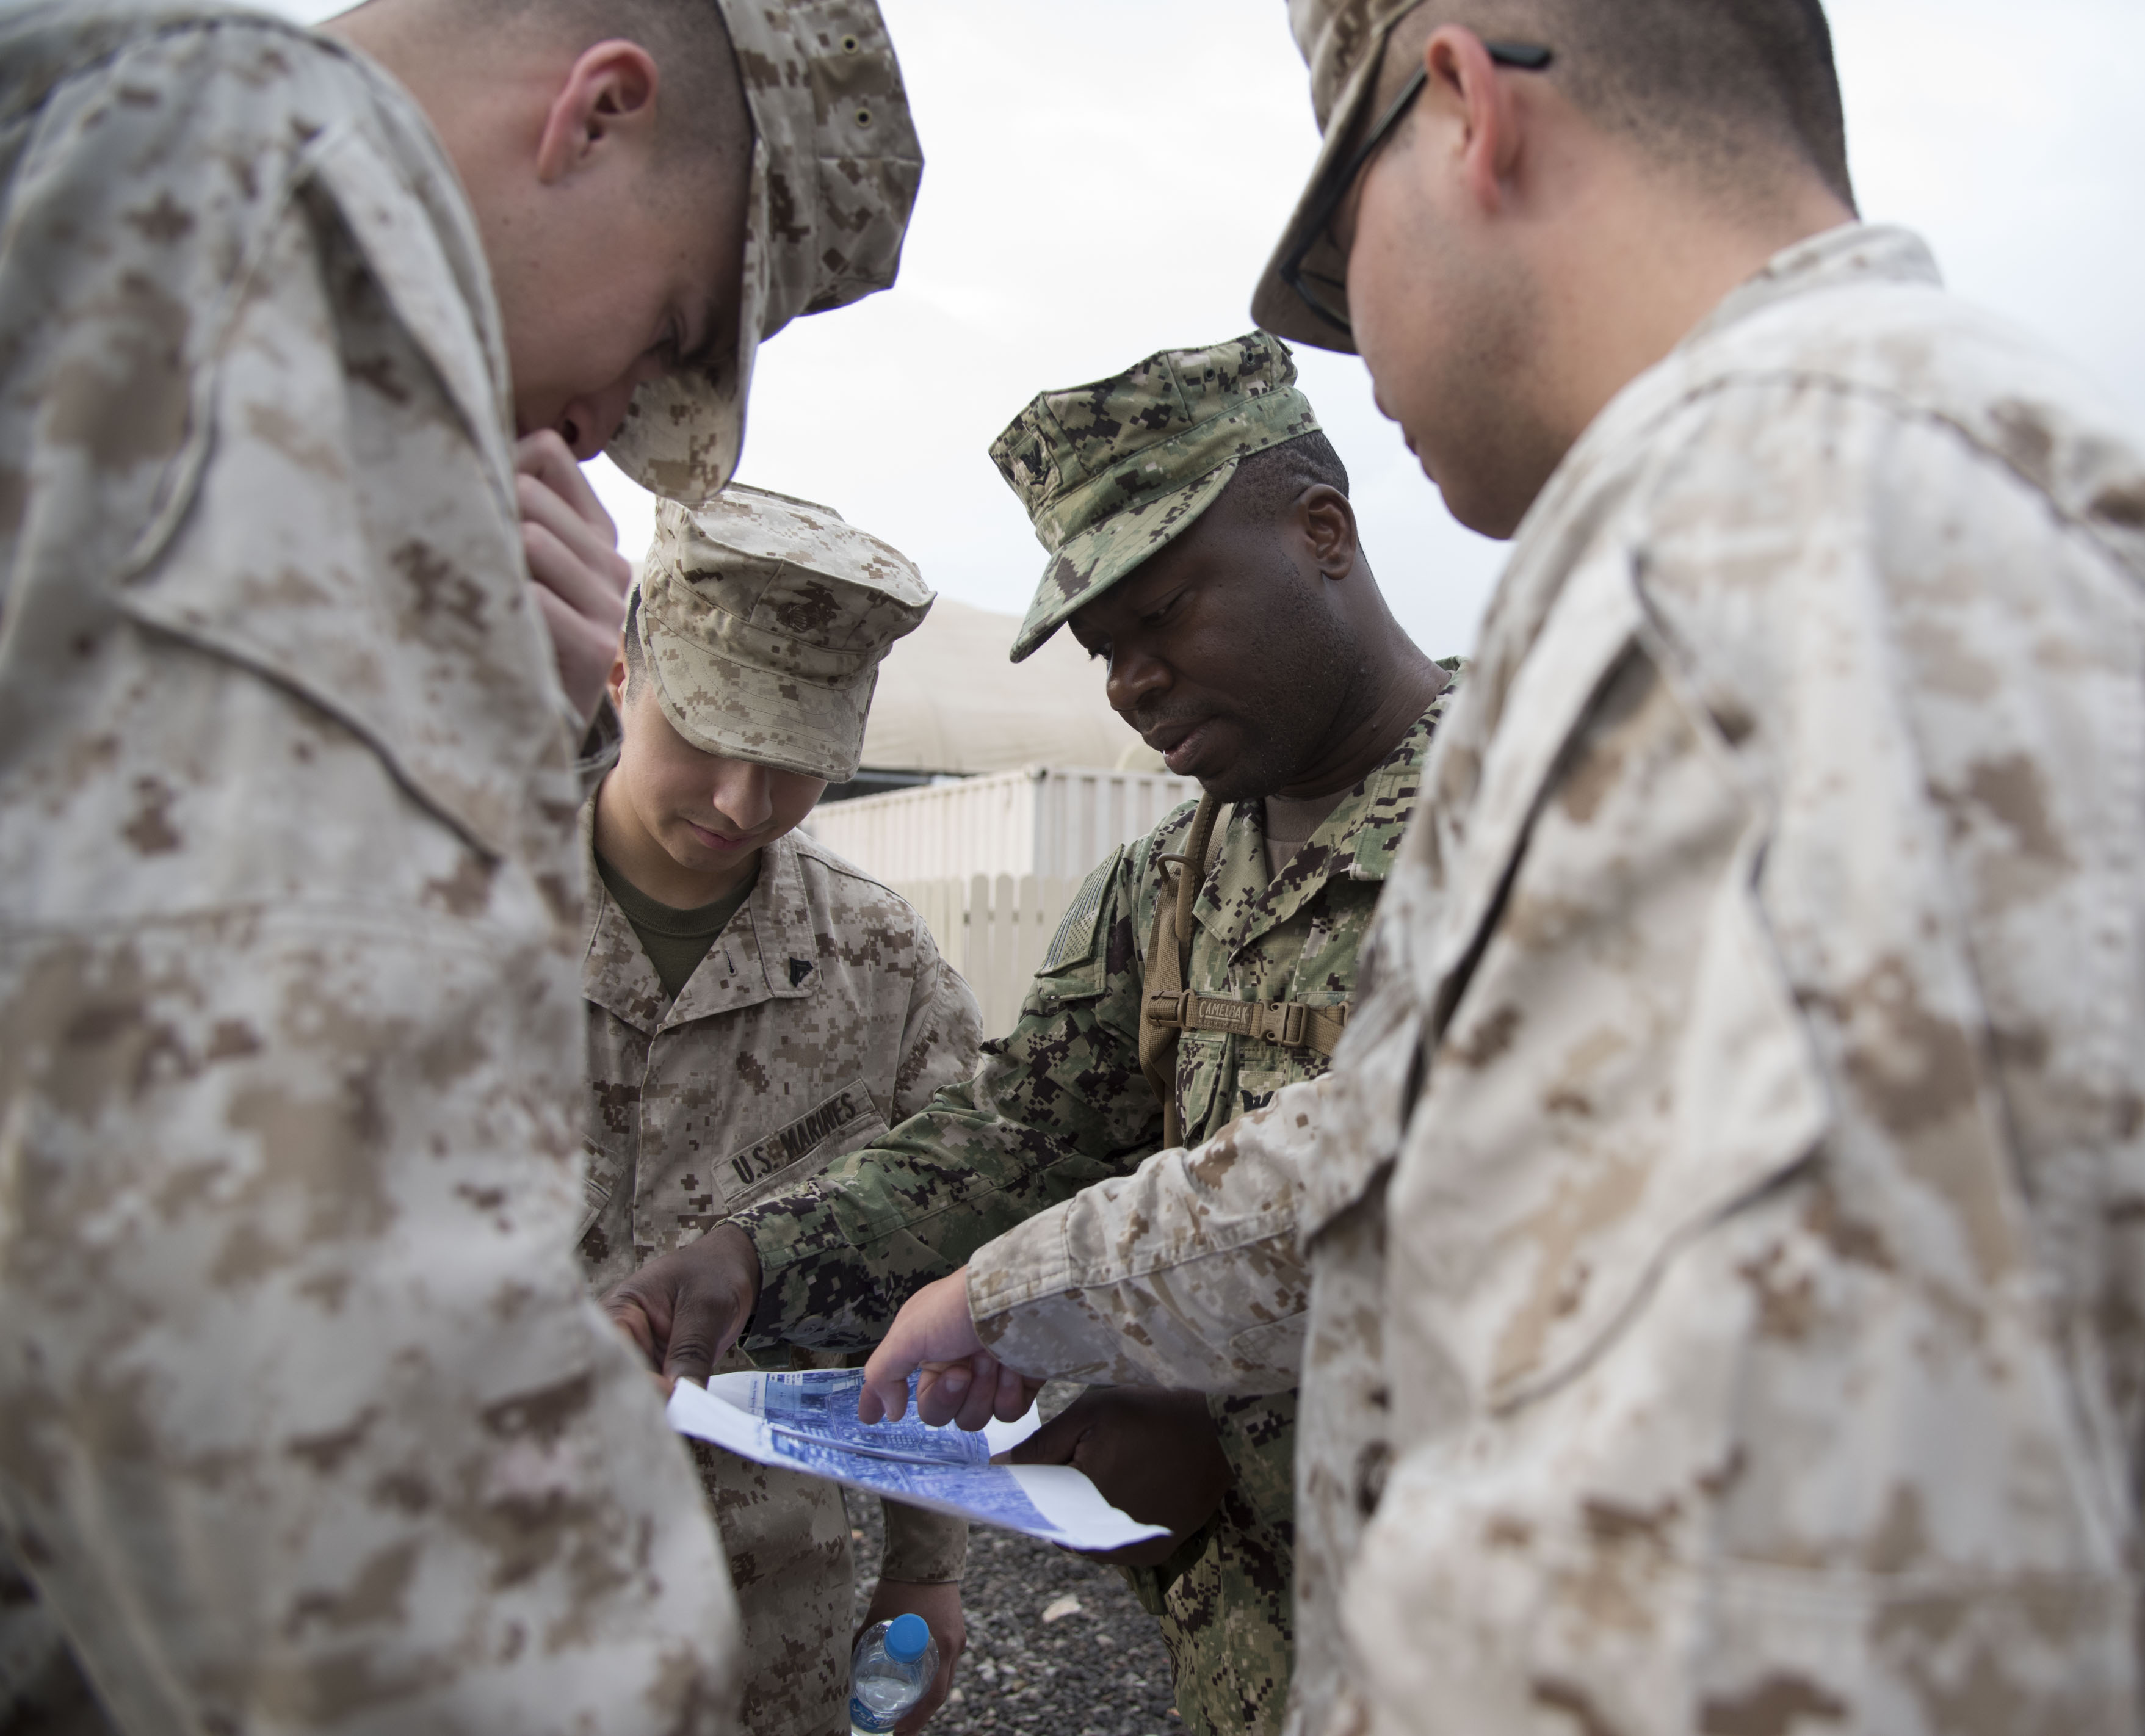 U.S. service members look over a map as part of land navigation training during a Joint Corporals Course hosted by Combined Joint Task Force – Horn of Africa at Camp Lemonnier, Jan. 11, 2018. The Joint Corporals Course is designed to provide junior service members with the knowledge and skills necessary to assume leadership roles of greater responsibility as a non-commissioned officer, as well as strengthen bonds between participating militaries. (U.S. Air National Guard photo by Staff Sgt. Allyson L. Manners)